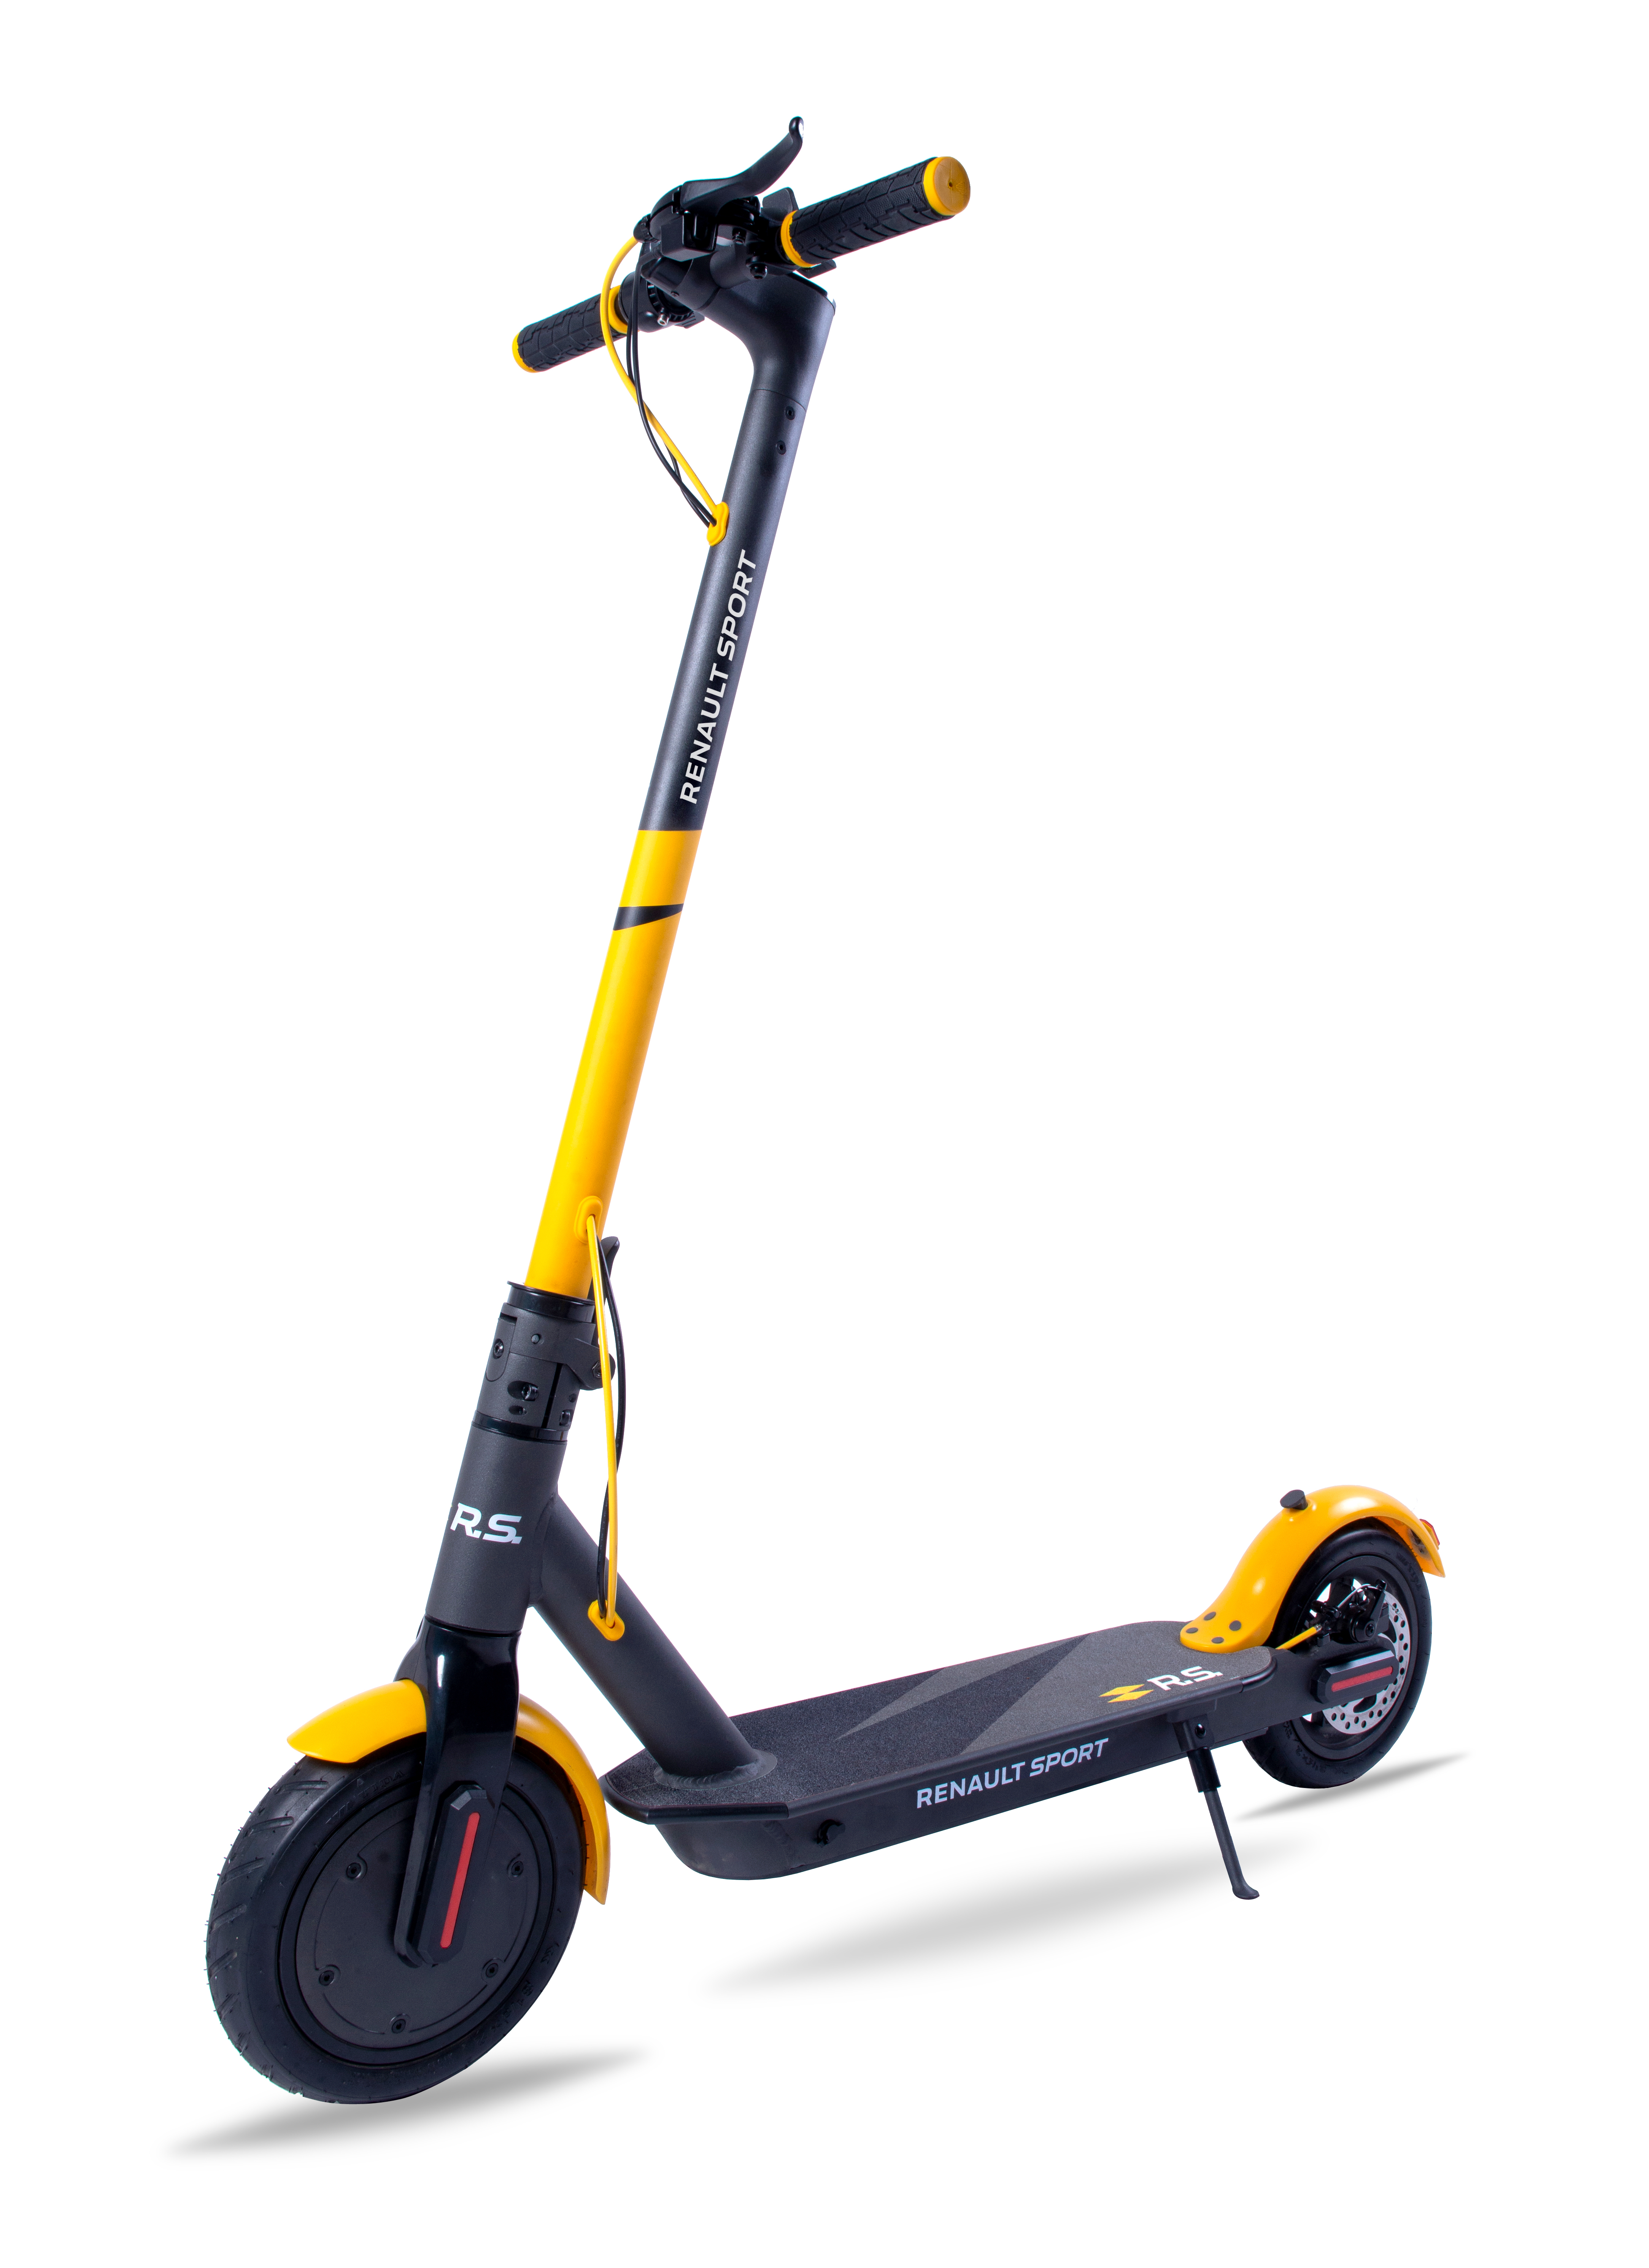 Original  R.S. e-Scooter V2